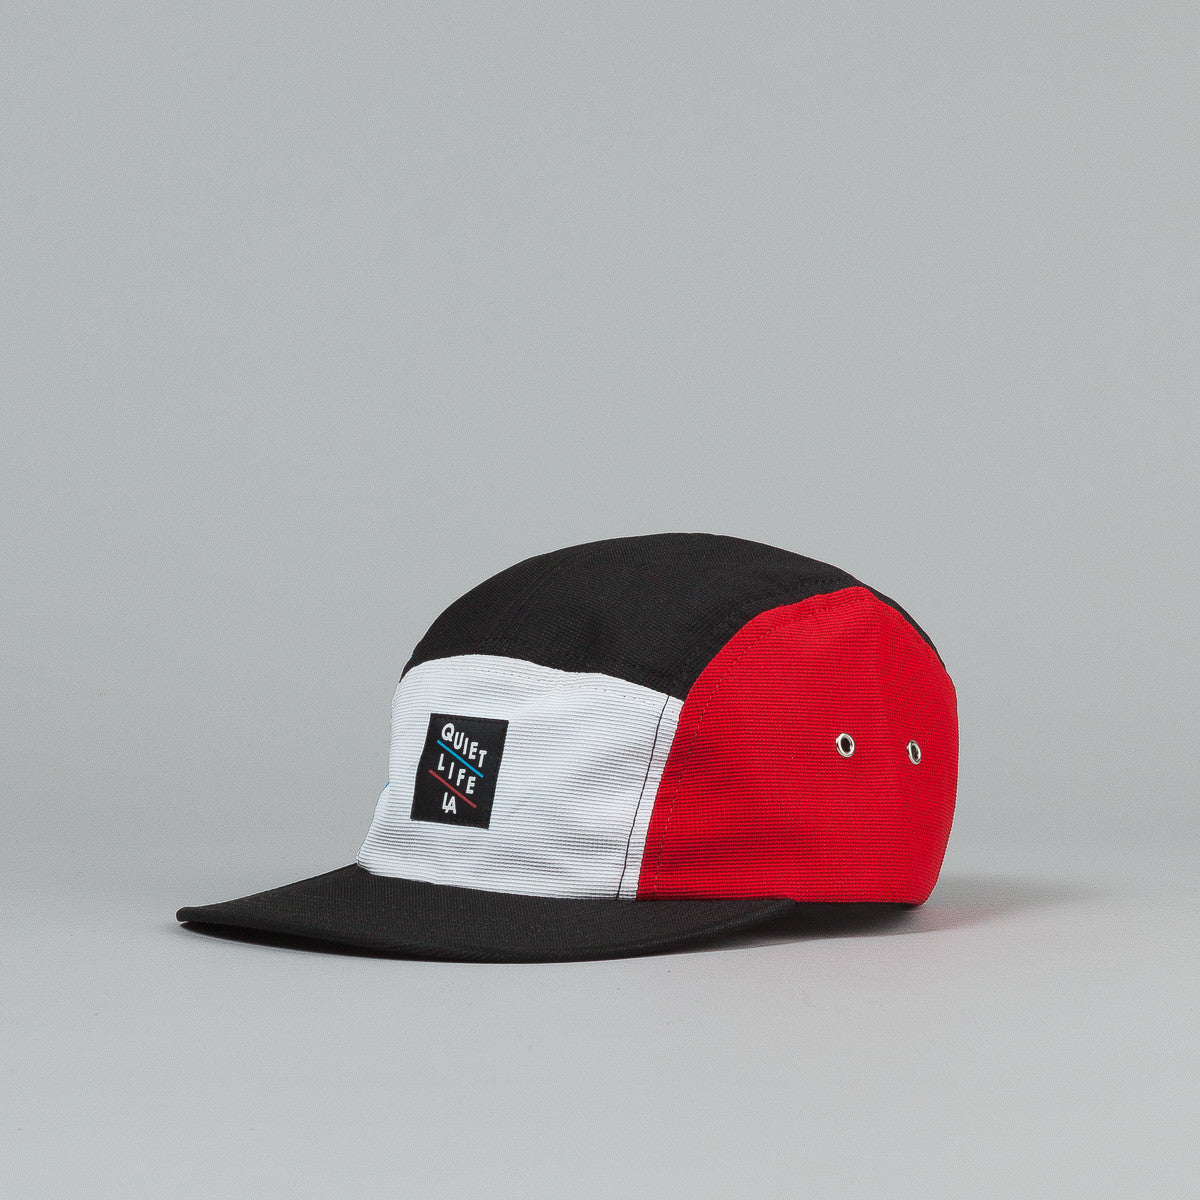 The Quiet Life Aruba 5 Panel Cap